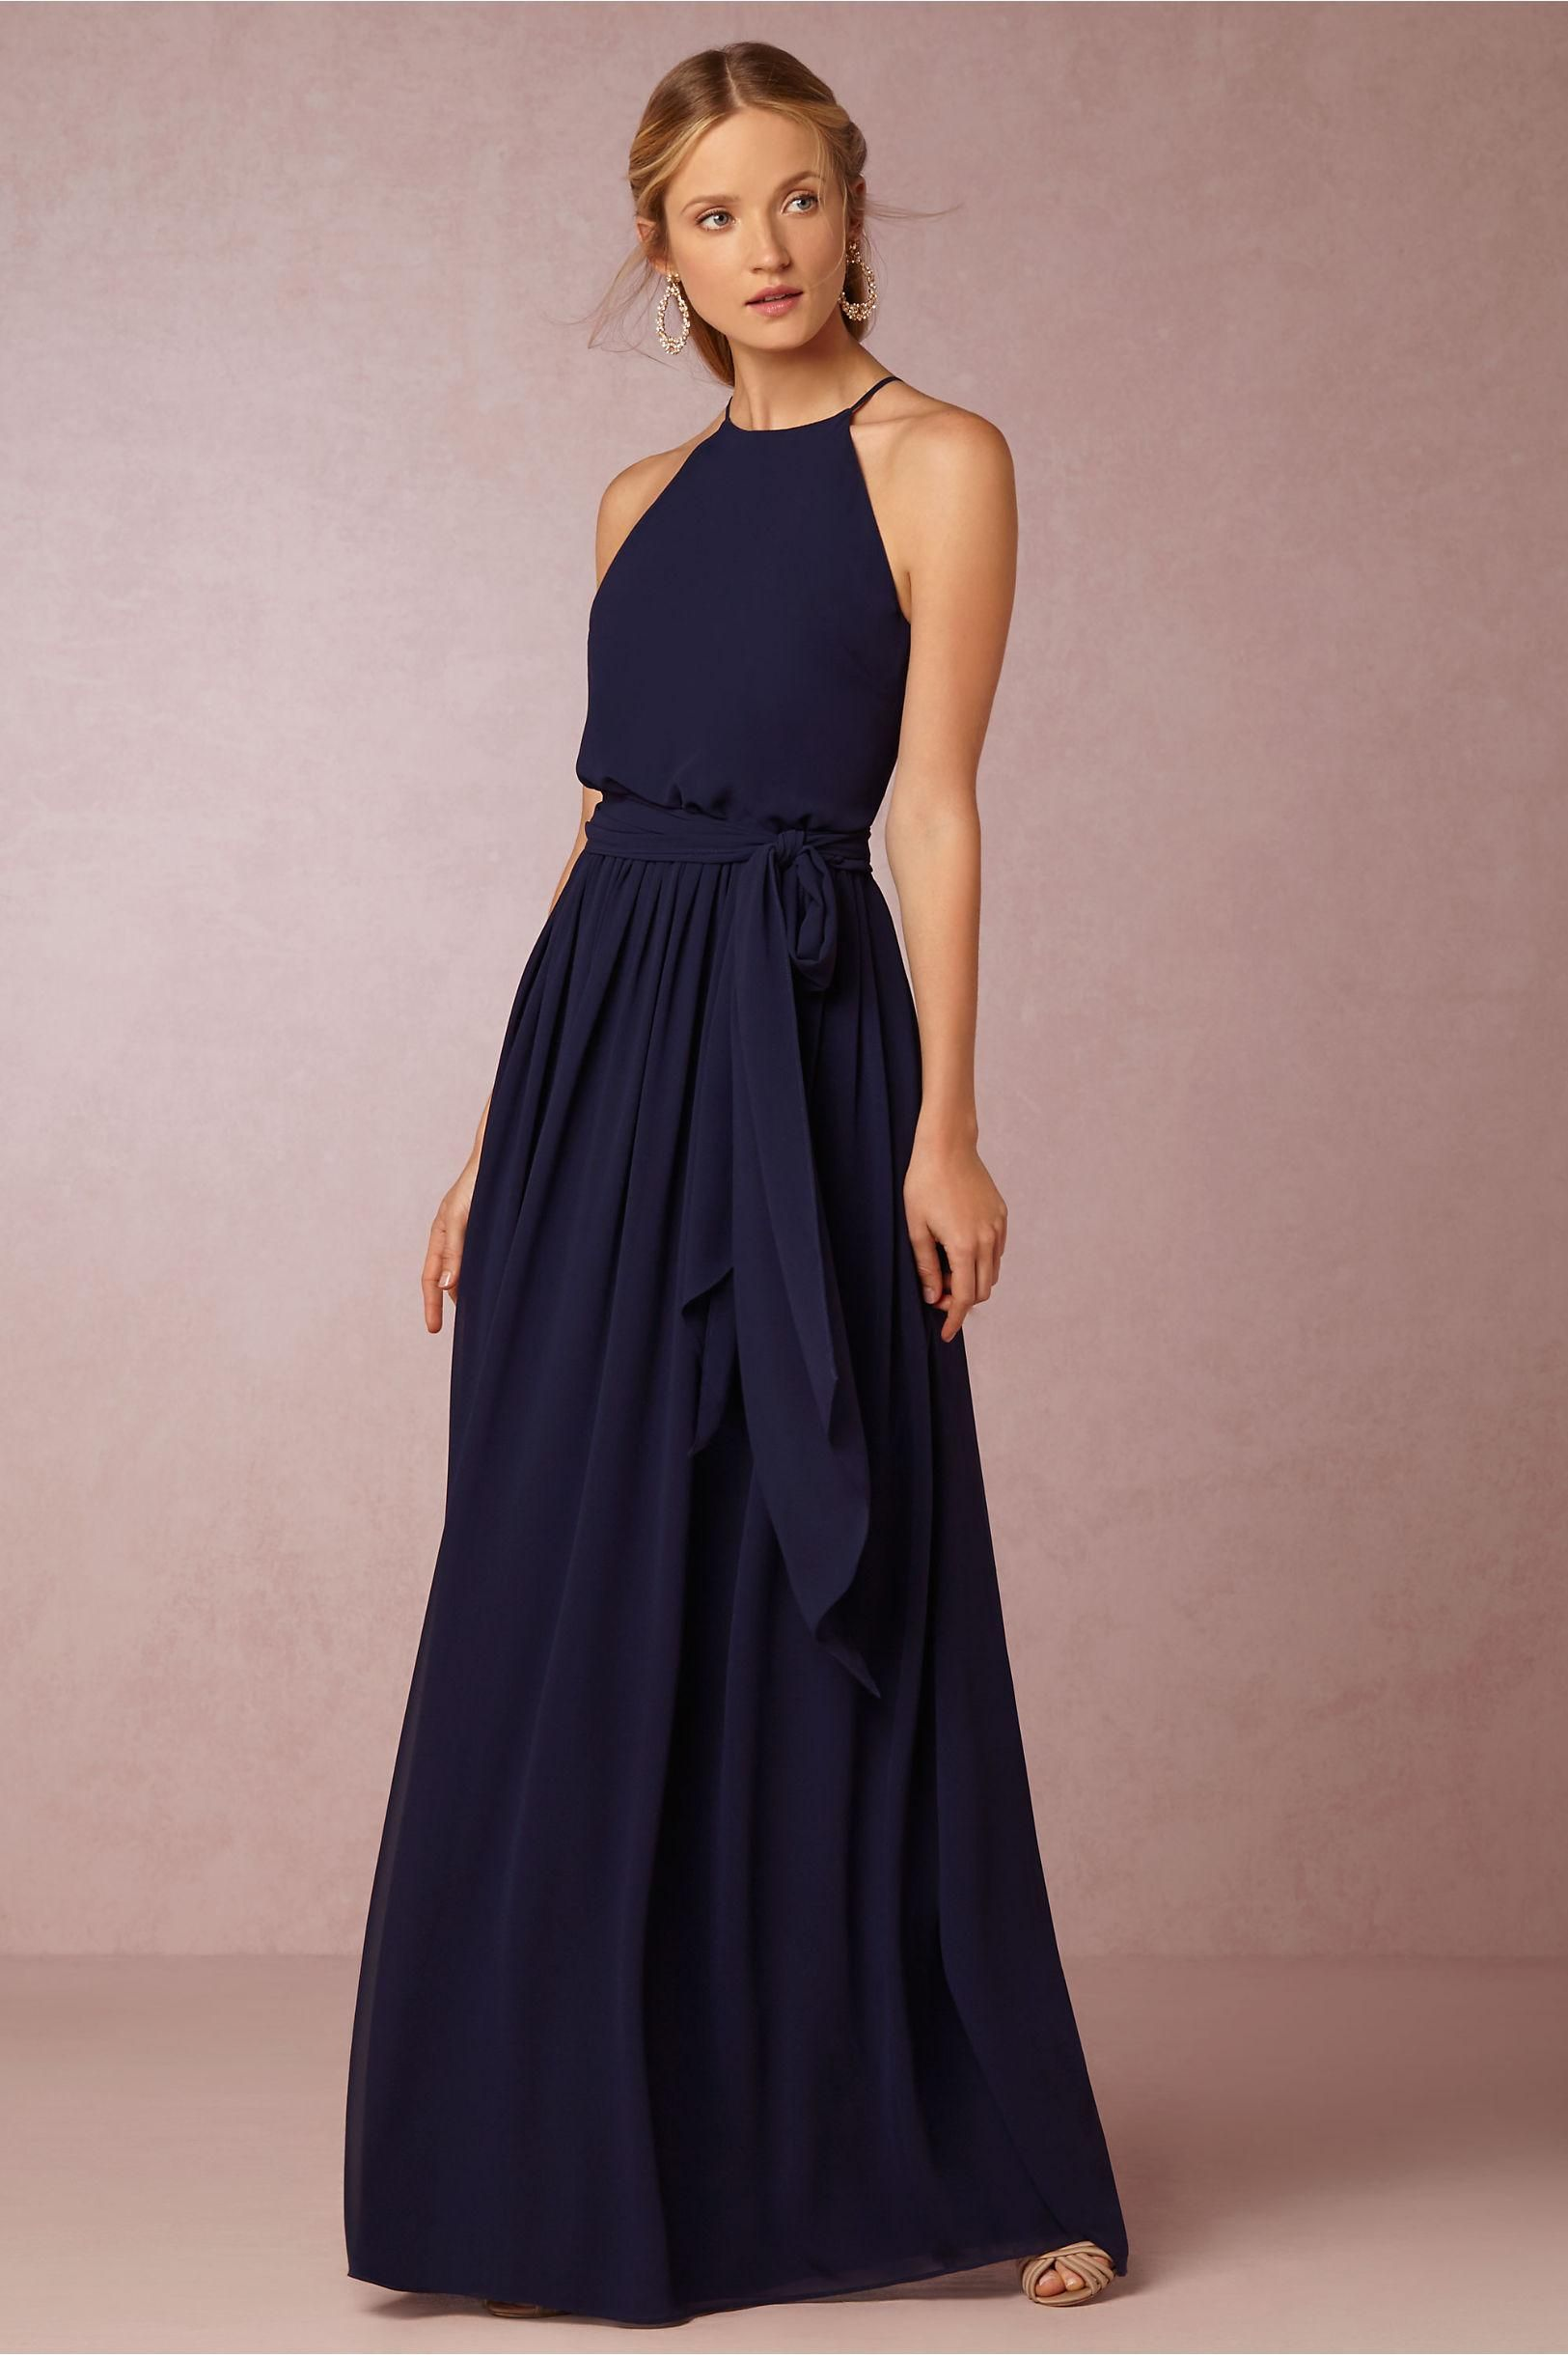 2018 Burgundy BHLDN Bridesmaid Dresses Navy Blue Chiffon ...